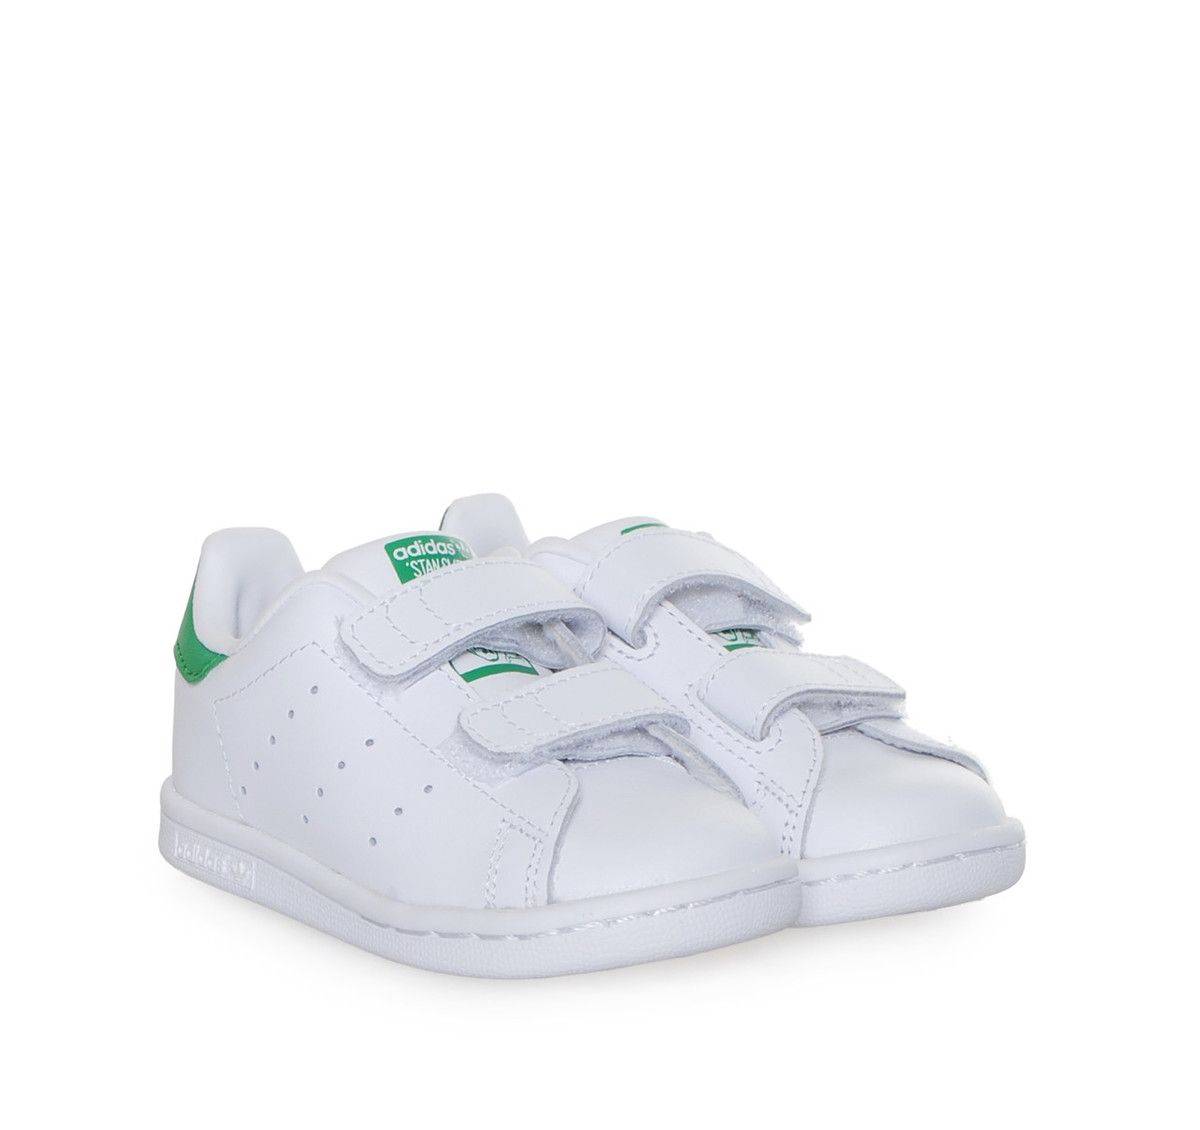 STAN SMITH ADIDAS White/Green Baby Leather Shoes for Boys and Girls with  double scratch